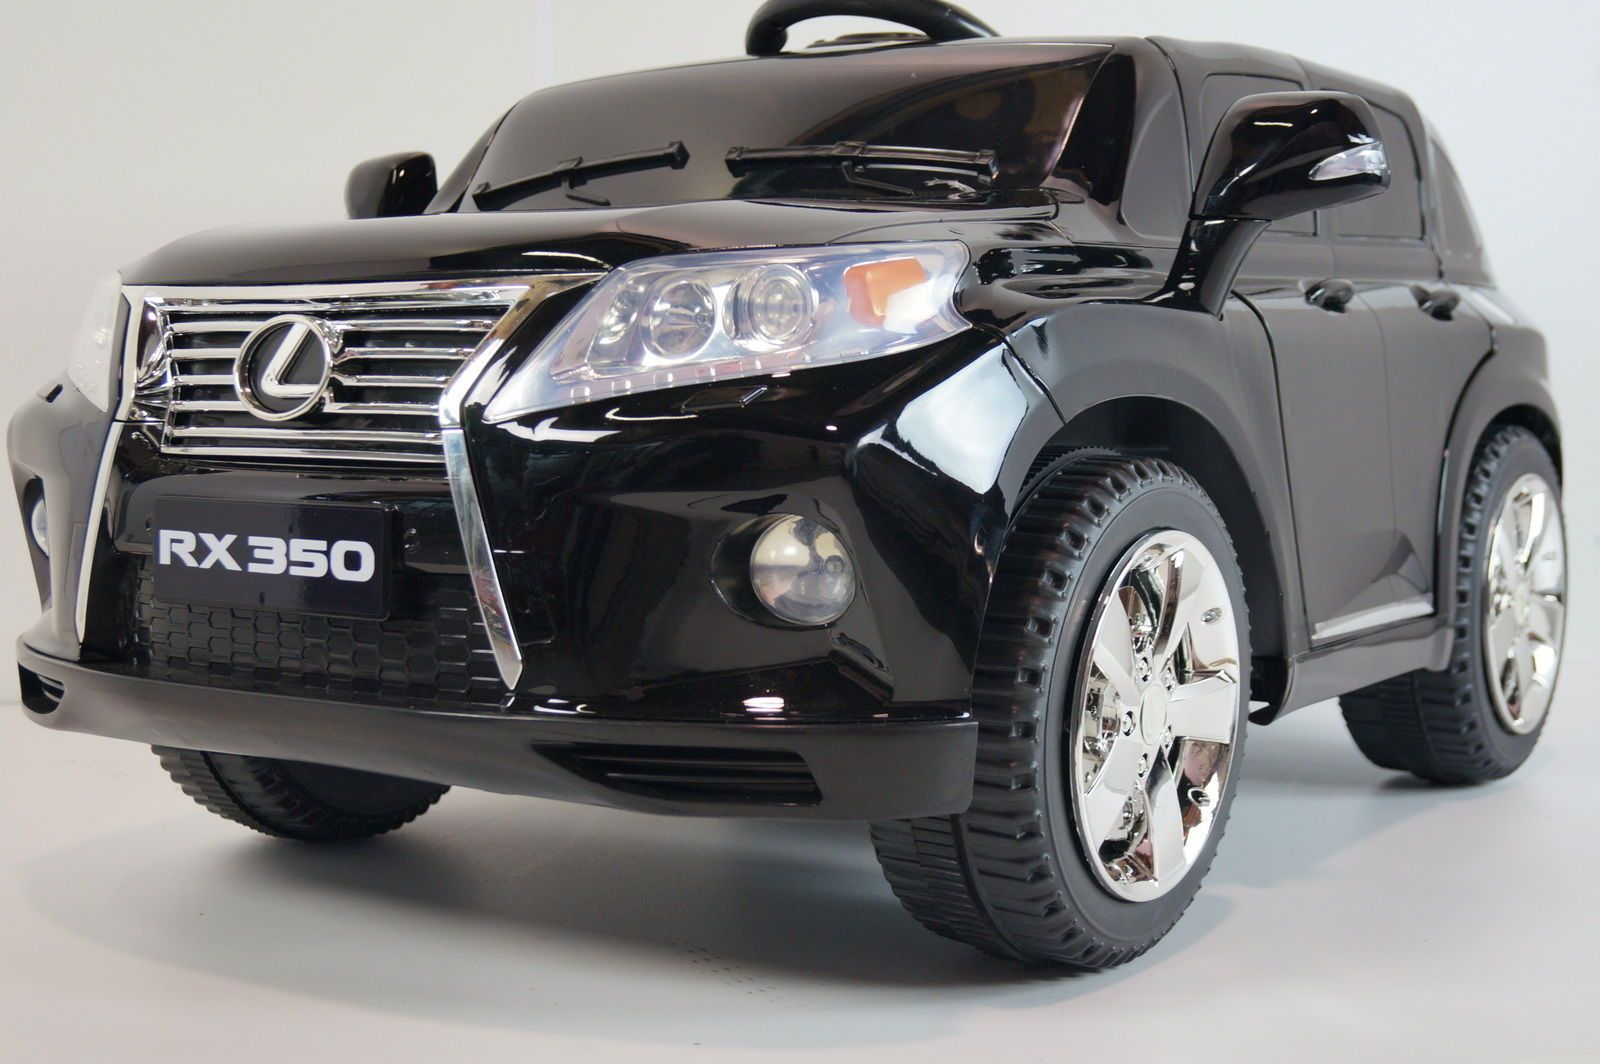 Rideonecar Battery Operated Ride On Toy Car For Kids Lexus Rx350